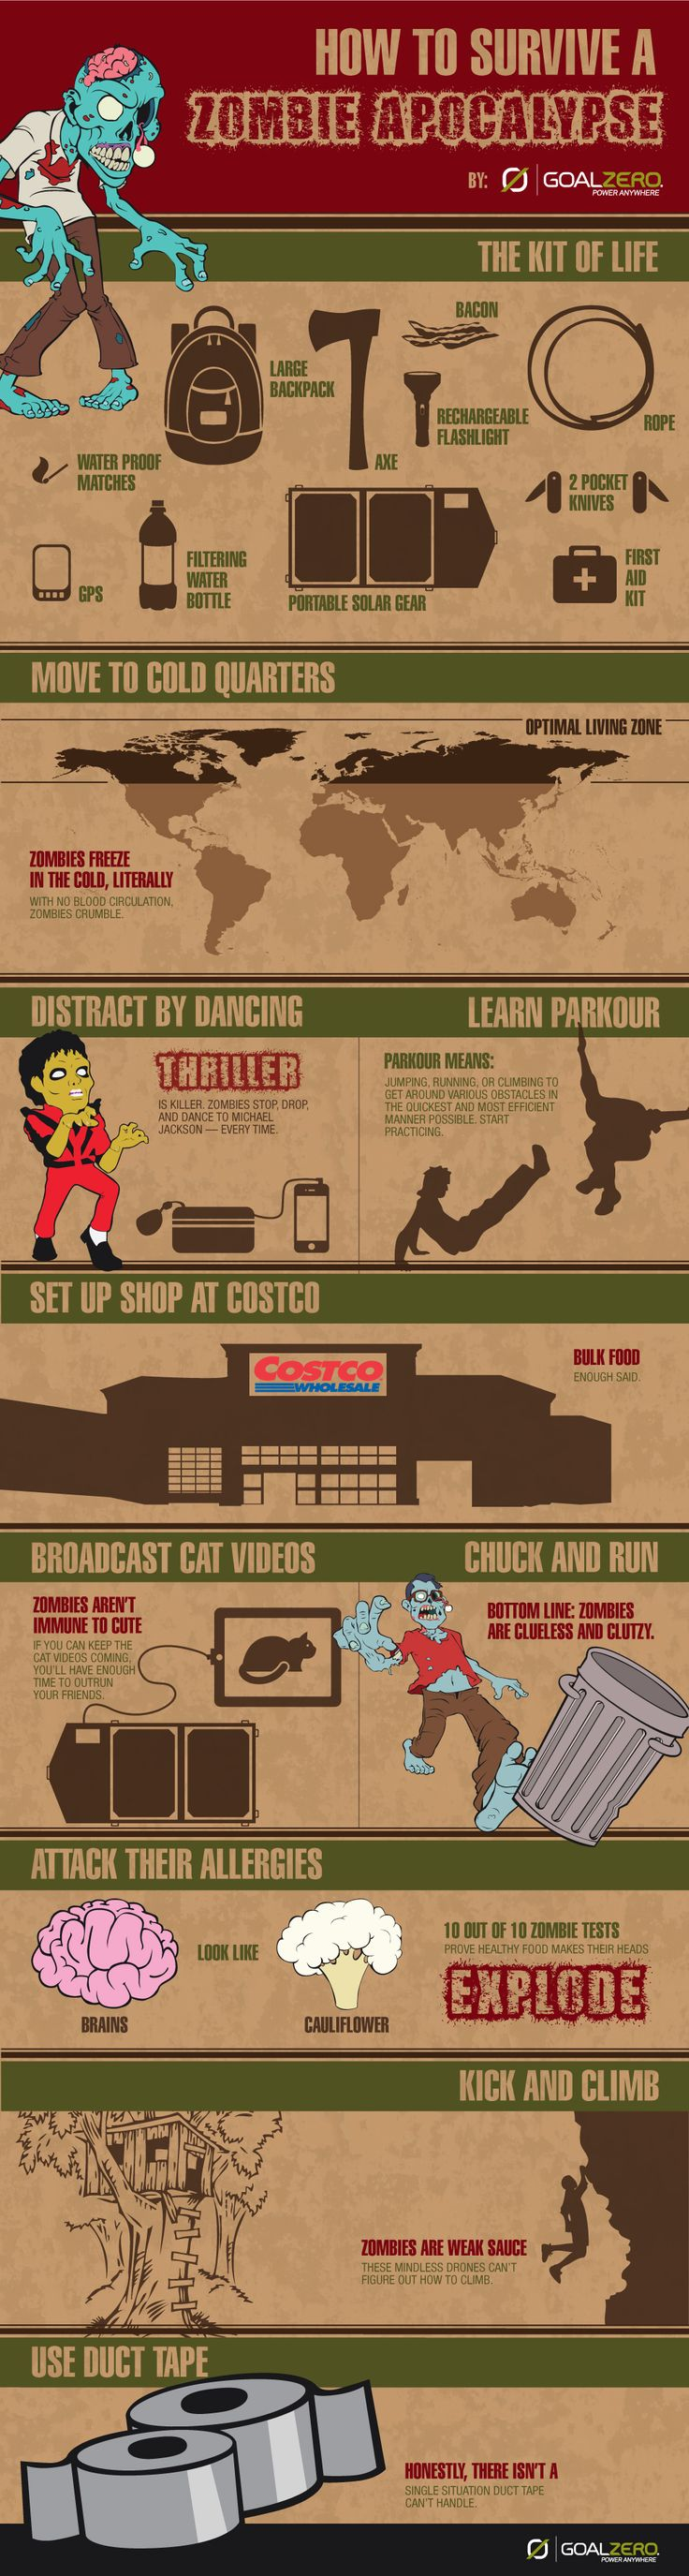 How to Survive the Zombie Apocalypse. Get those portable solar panels ready!